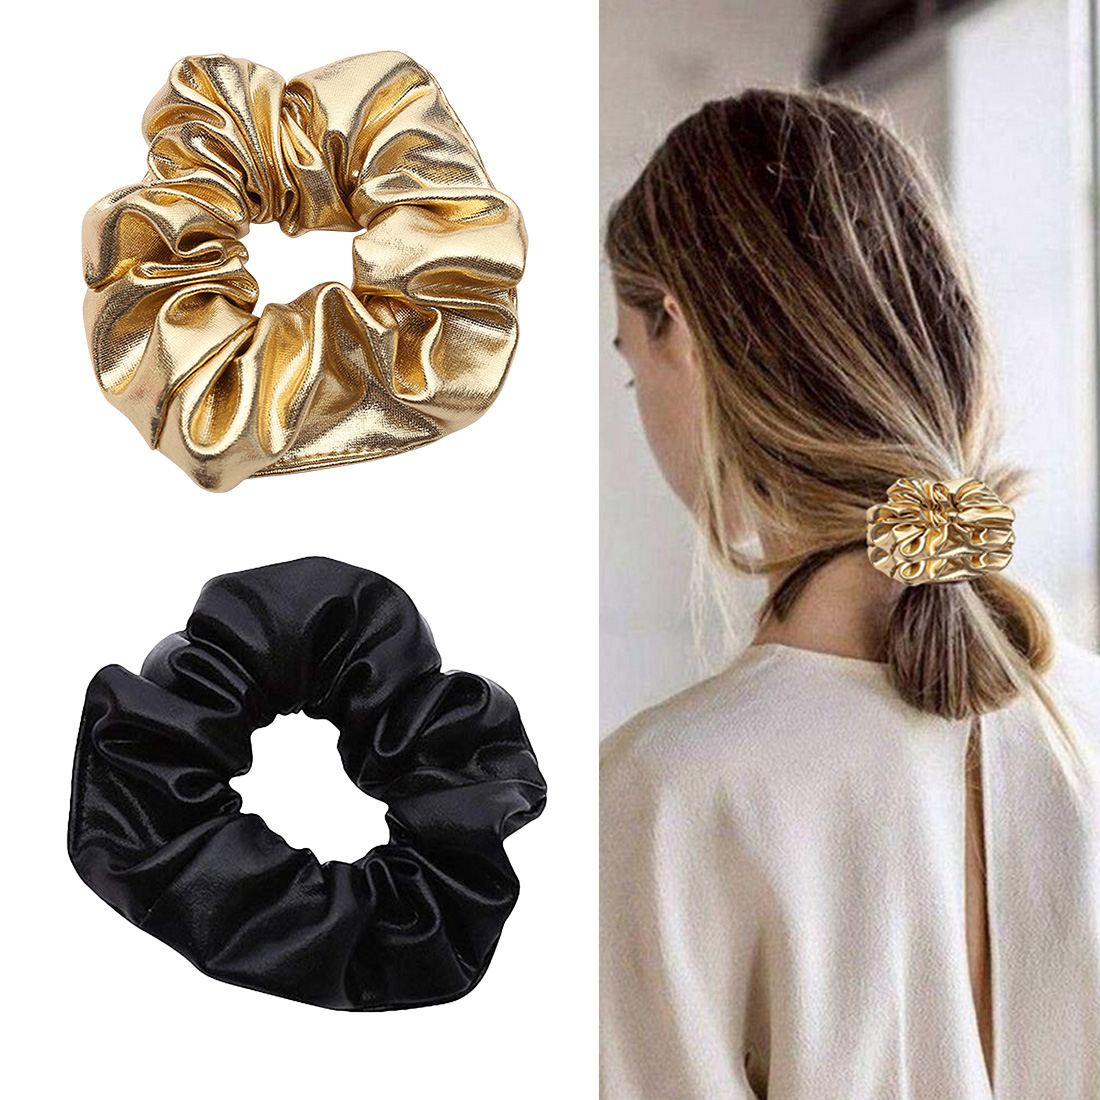 shiny elastic Women Pu Faux Leather Elastic Hair Girls Hairband Rope Ponytail Holder Scrunchie Gold Black Headbands Accesso in Women 39 s Hair Accessories from Apparel Accessories